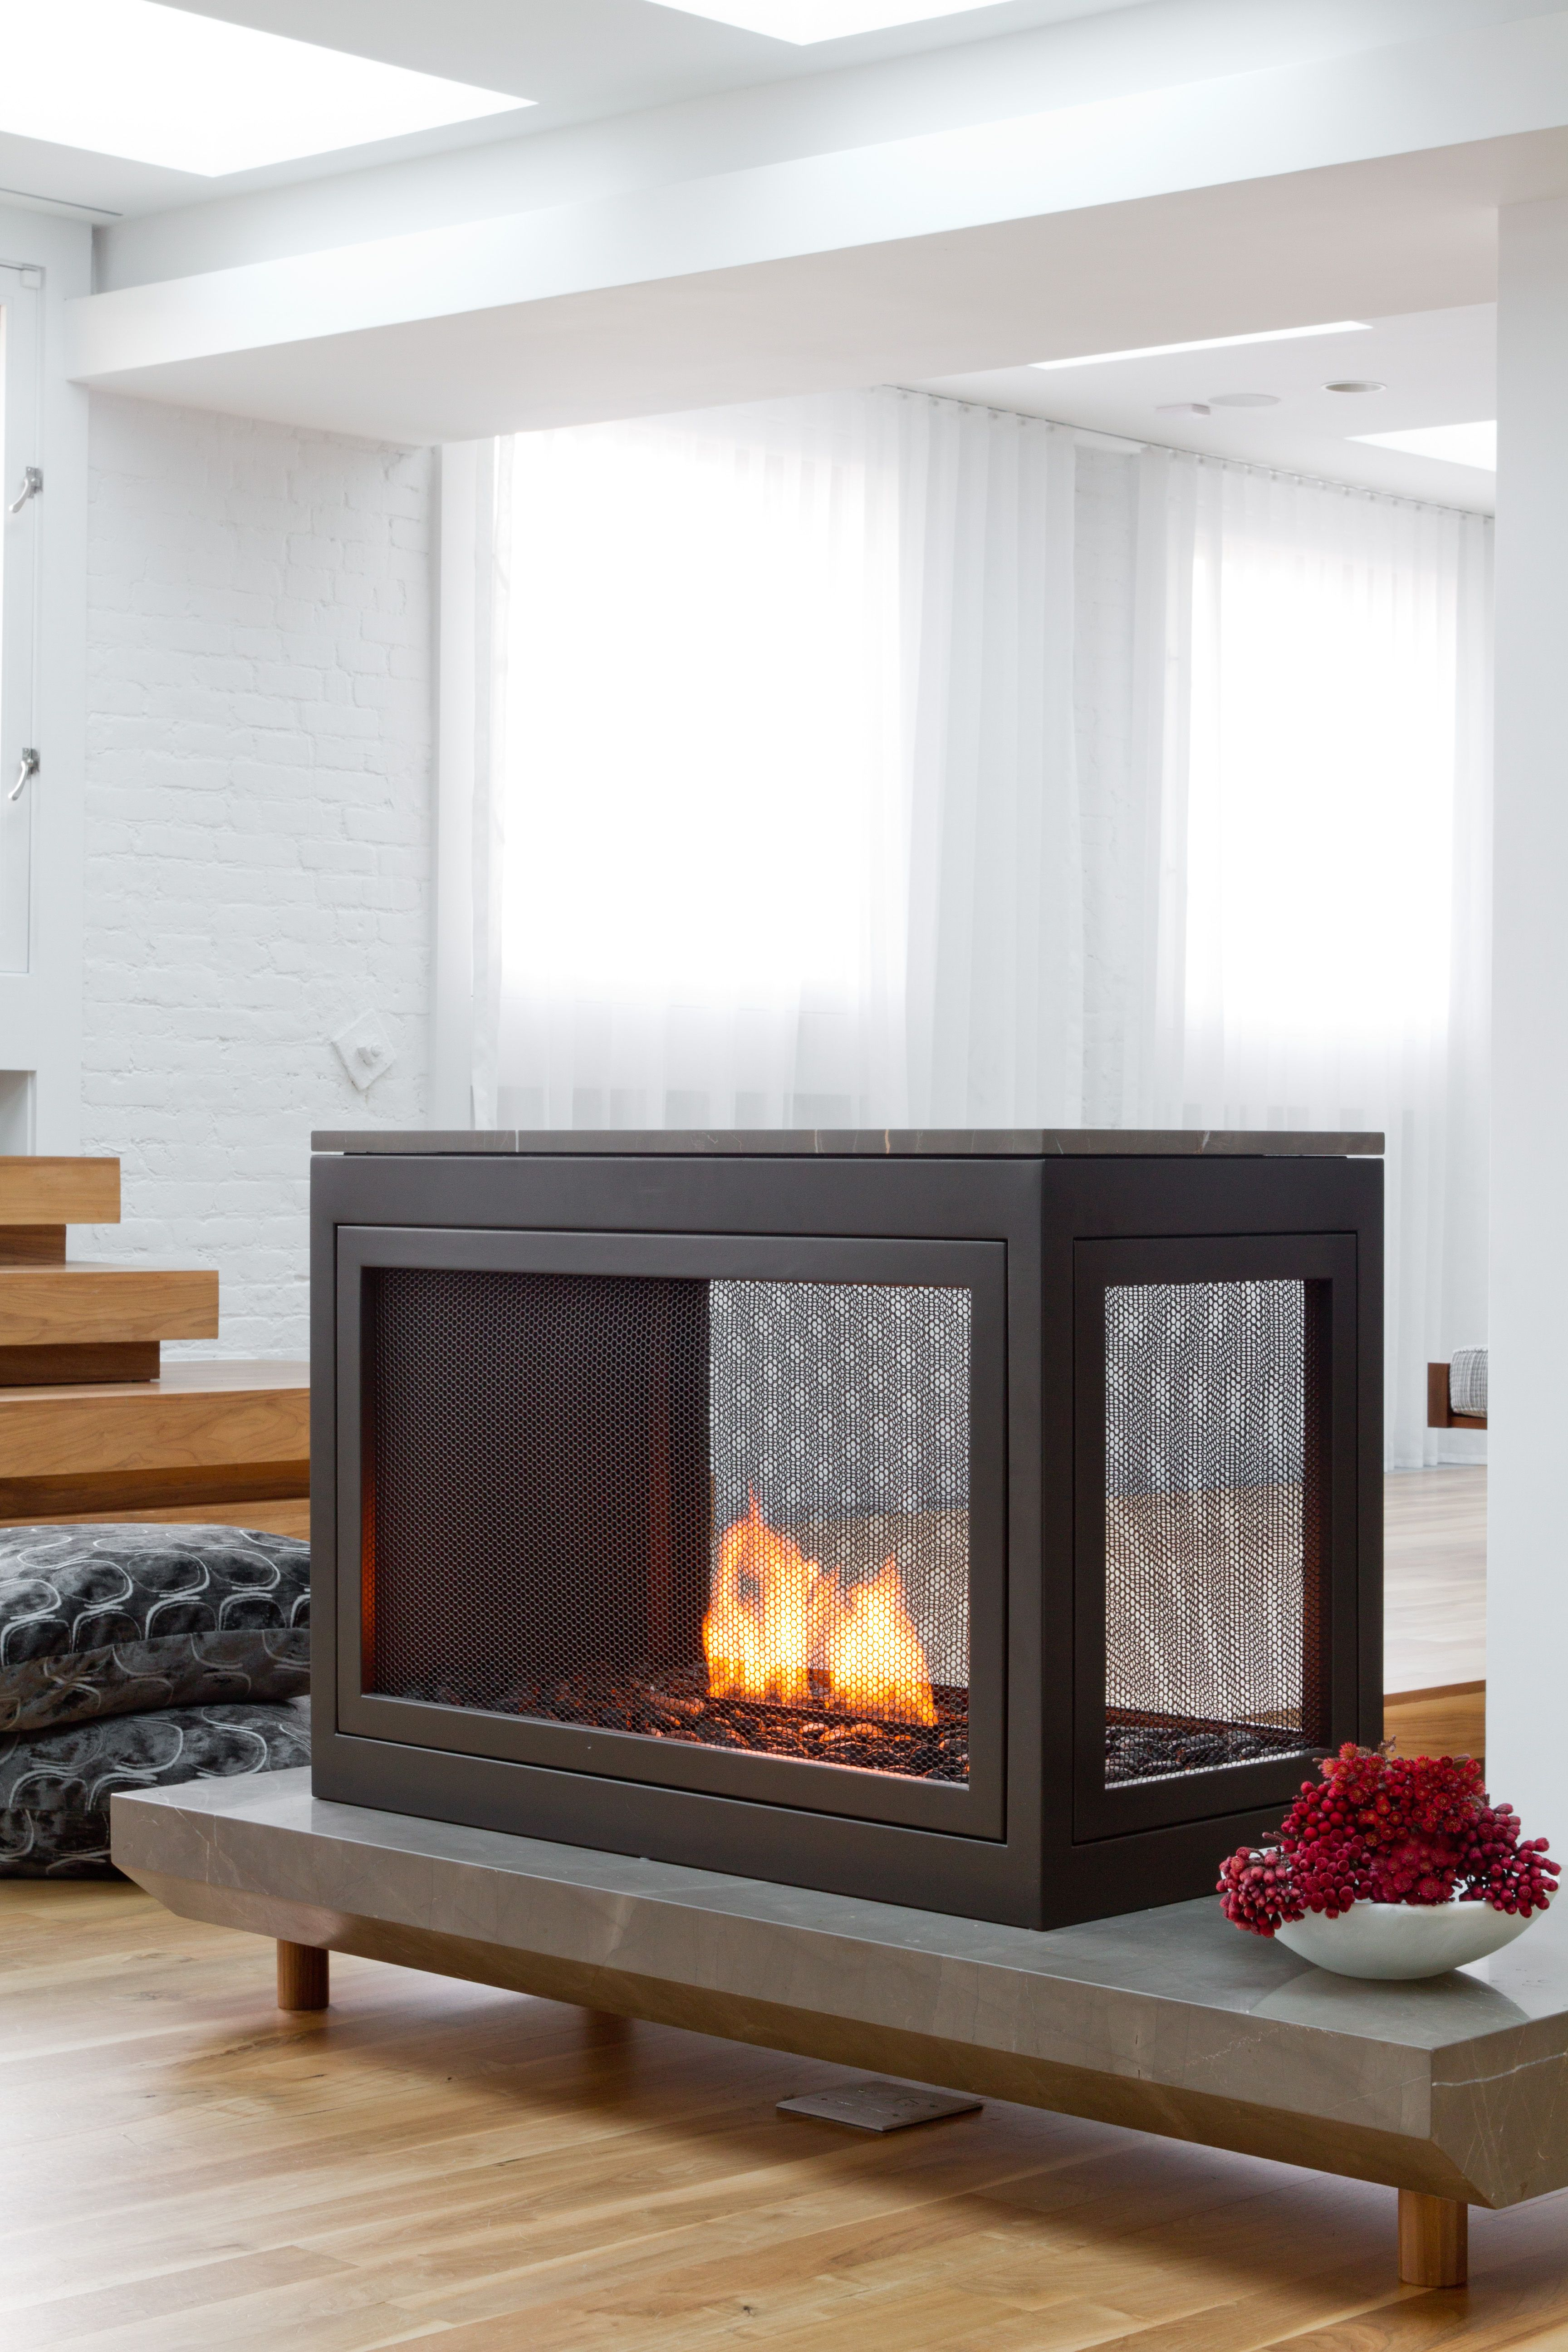 Yes You Can Hearthcabinet Luxury Ventless Fireplaces Allow You